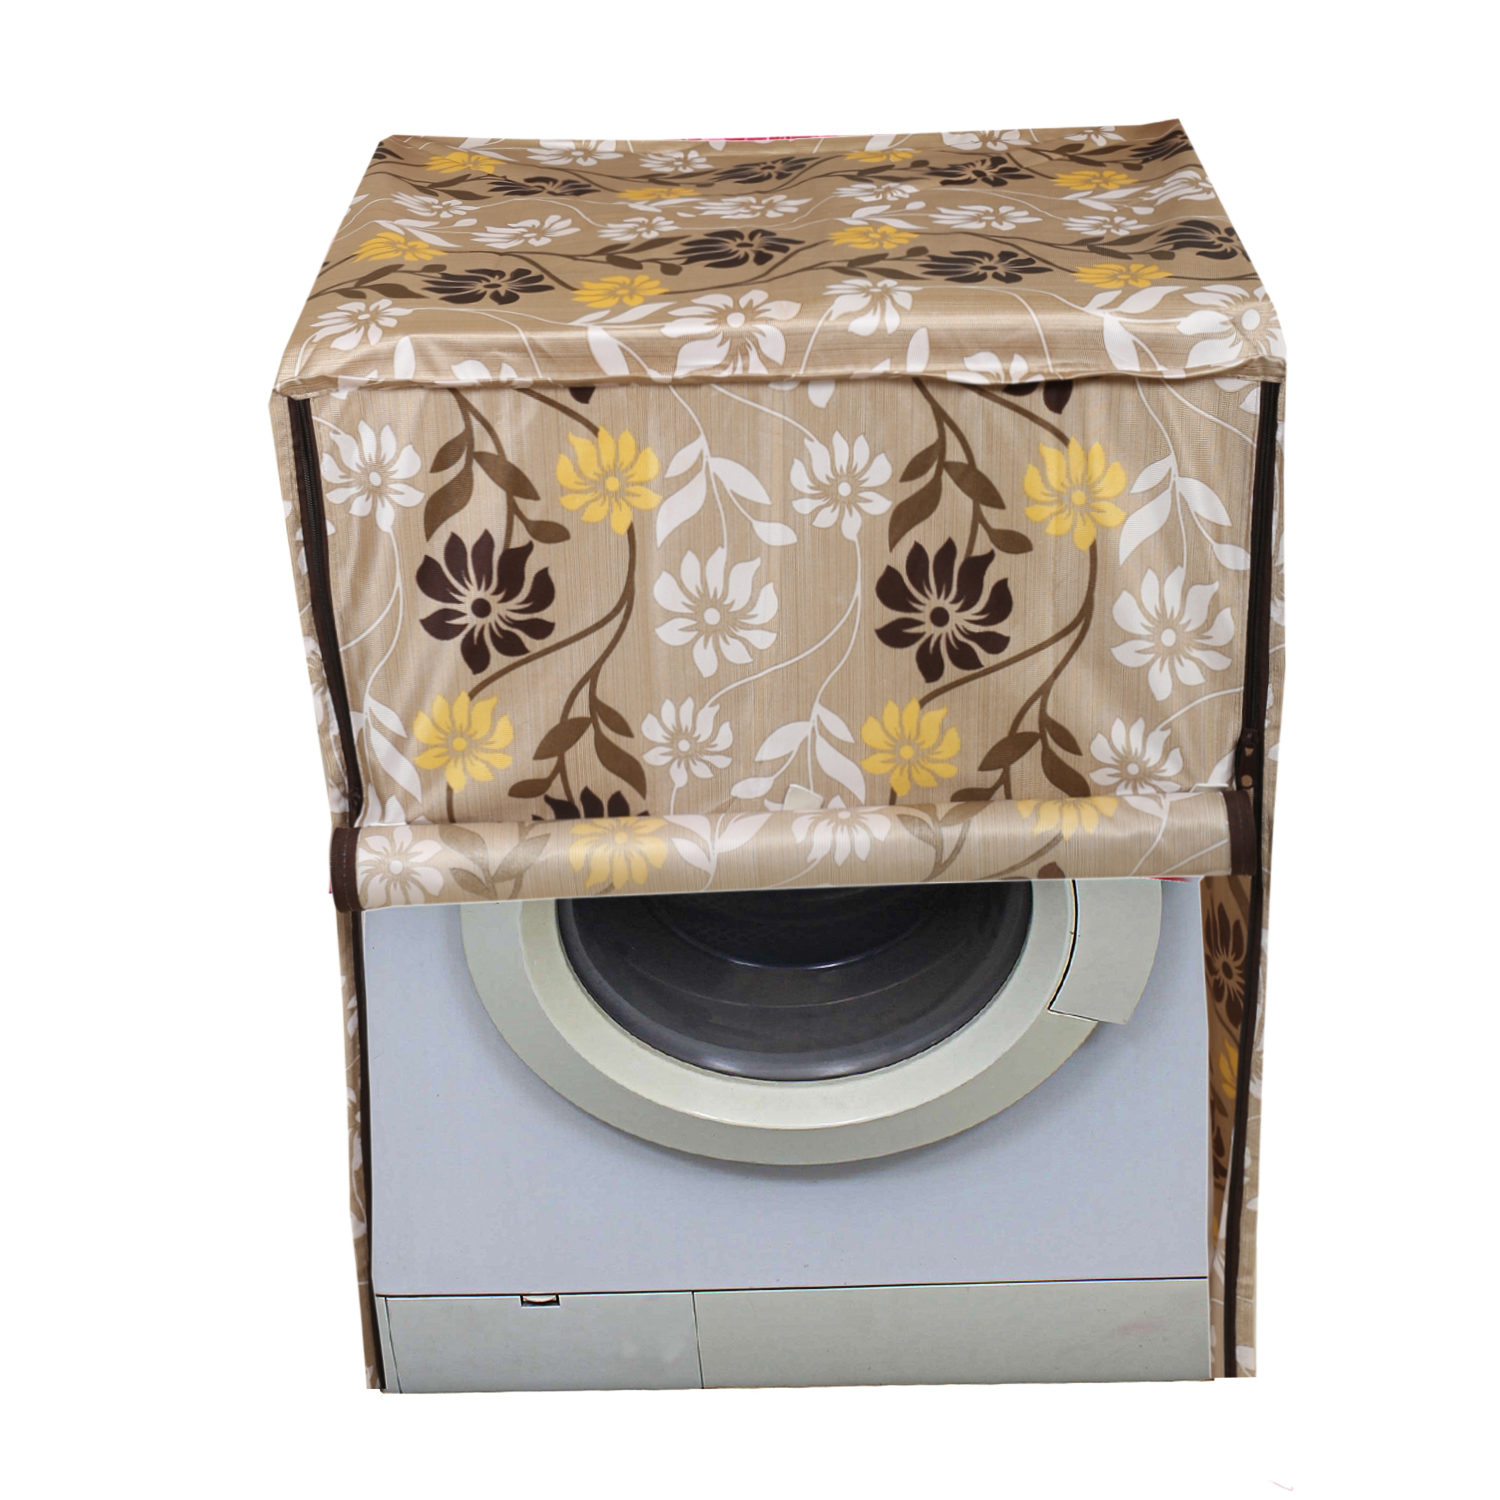 Kuber Industries Fabric Front Load Fully Automatic Washing Machine Cover (Light Brown)